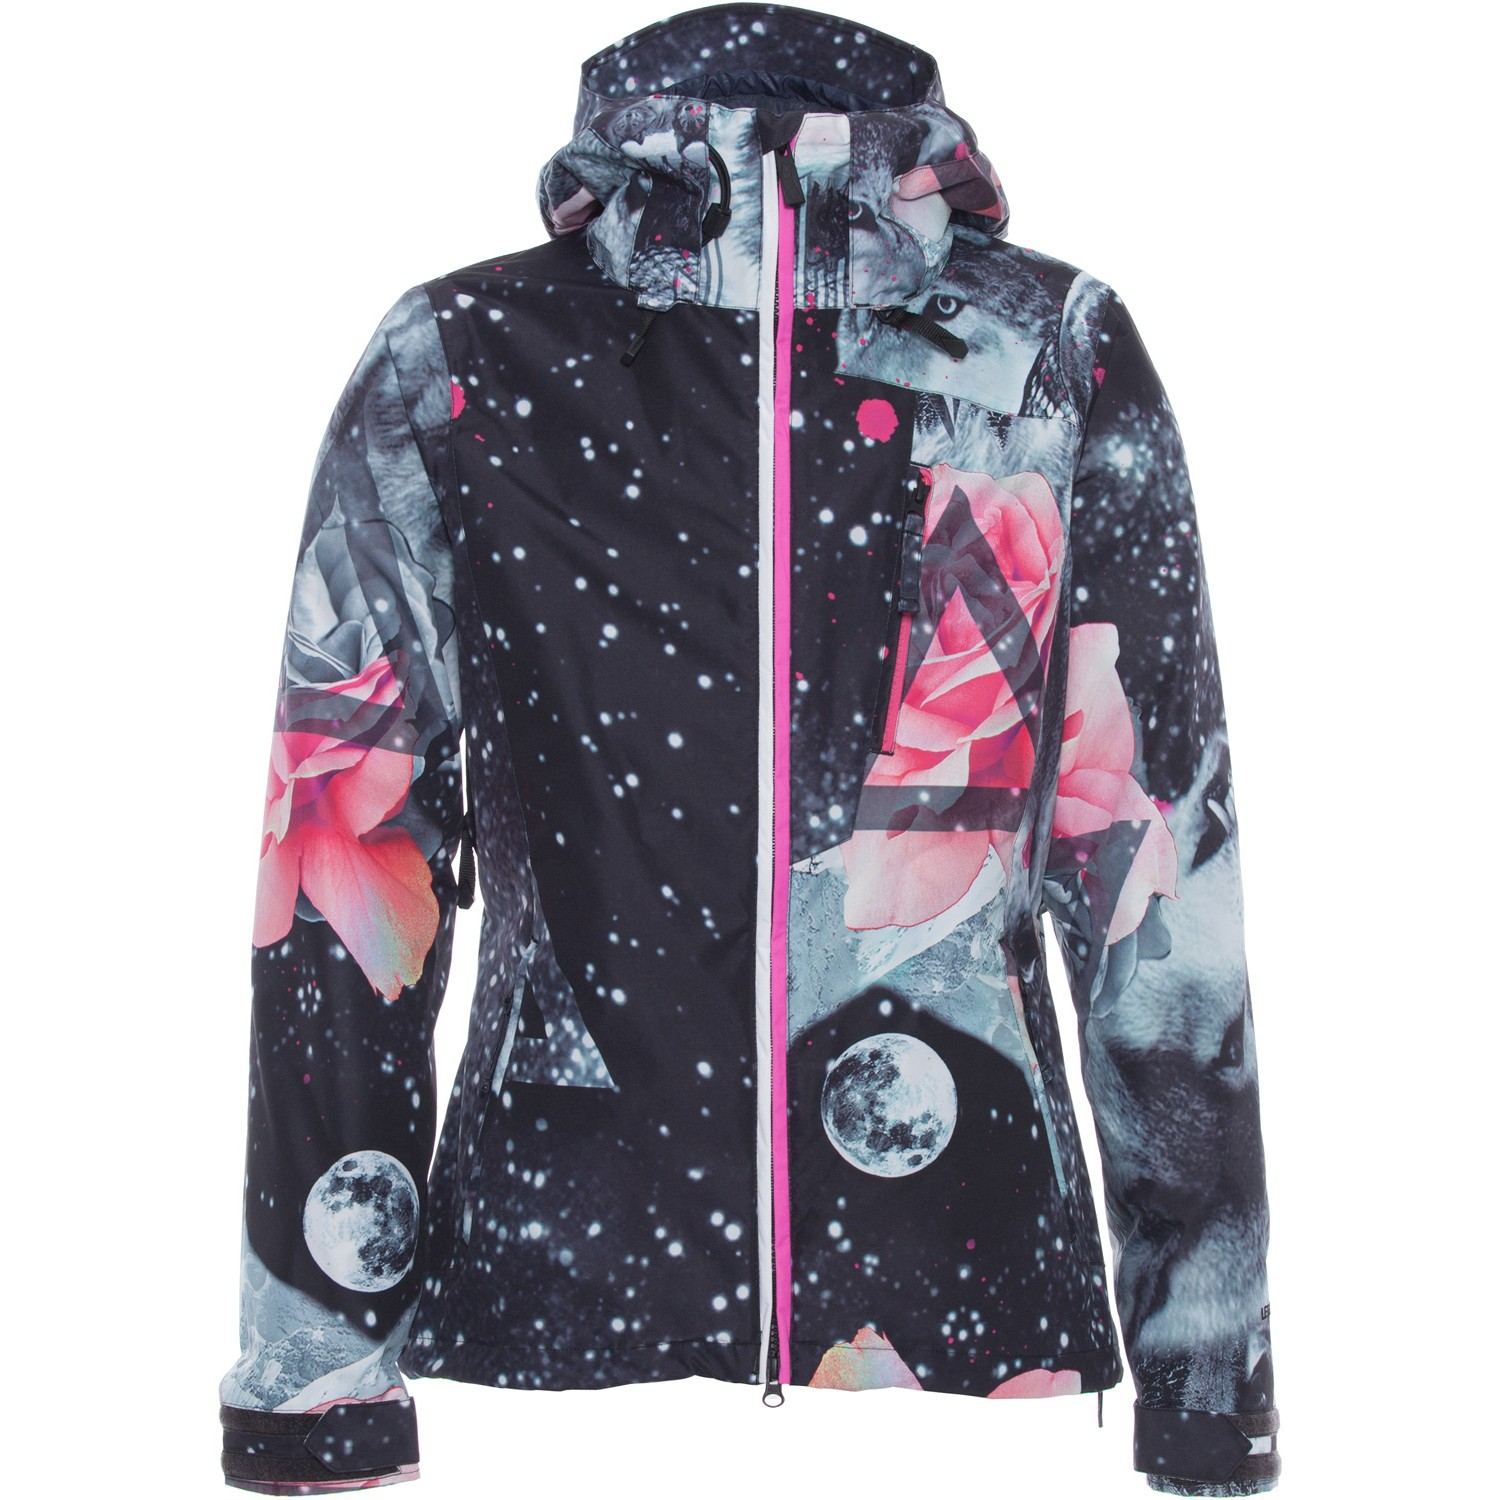 Snowmobile jackets for women